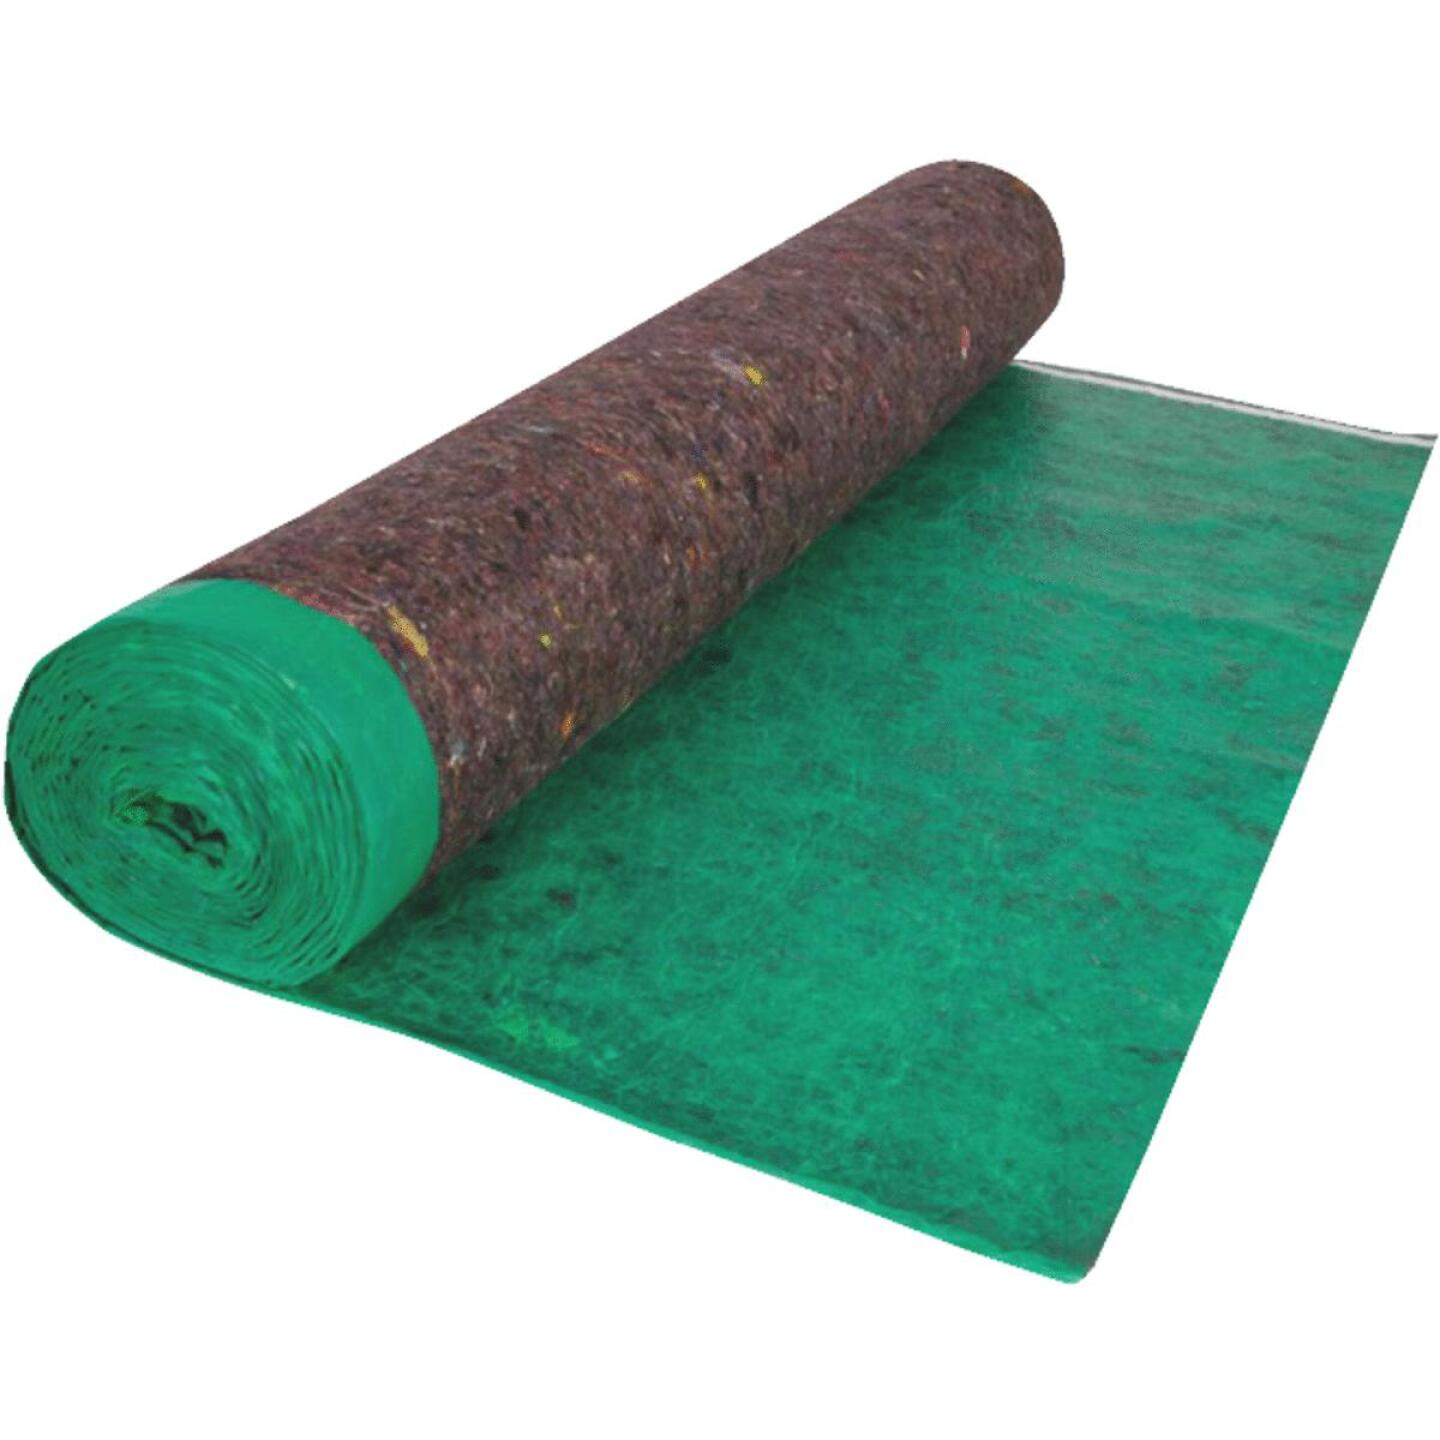 QEP SuperFelt 44 In. W x 27.3 Ft. L Underlayment, 100 Sq. Ft./Roll Image 1